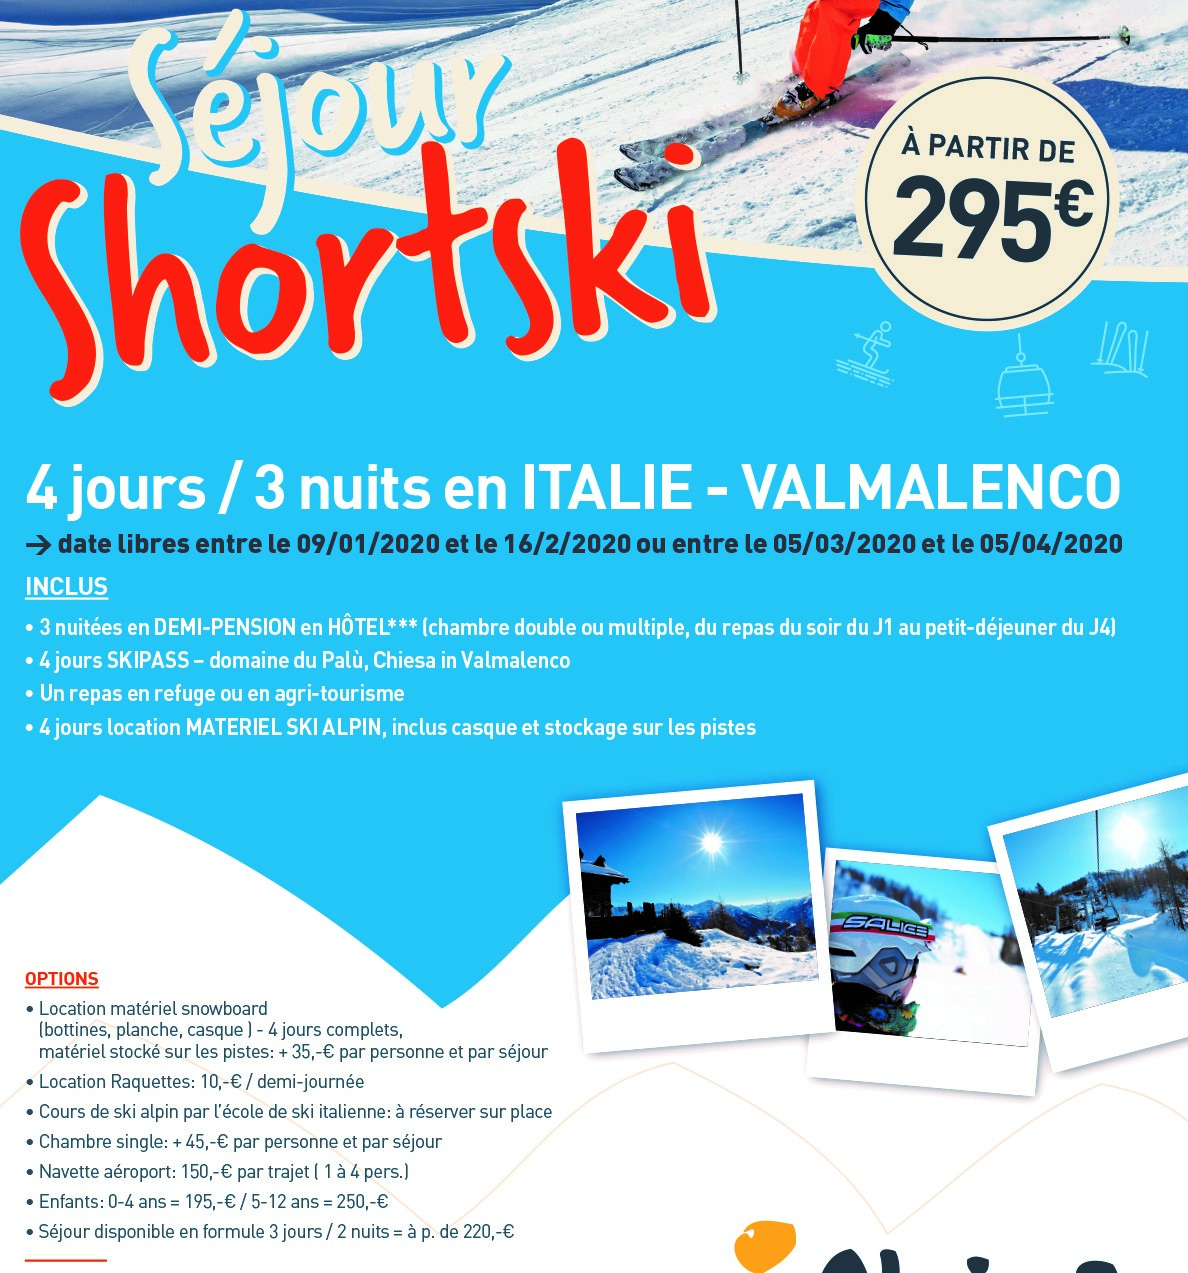 46283 Affiche Shortski 2020 version short web